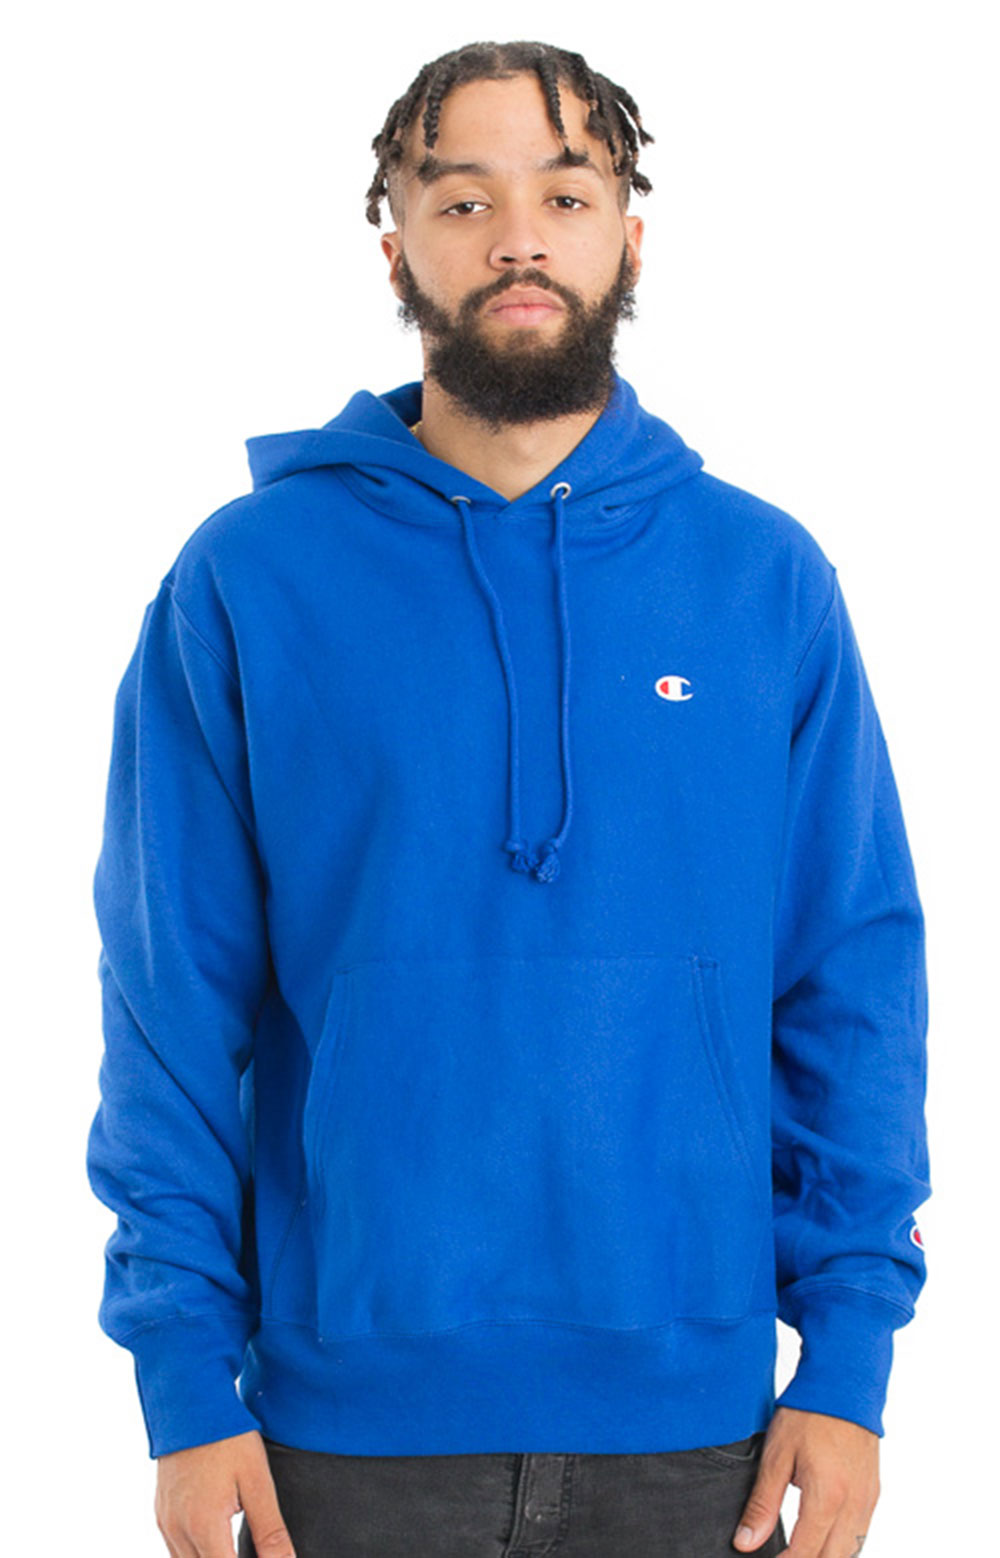 Reverse Weave Pullover Hoodie - Surf The Web